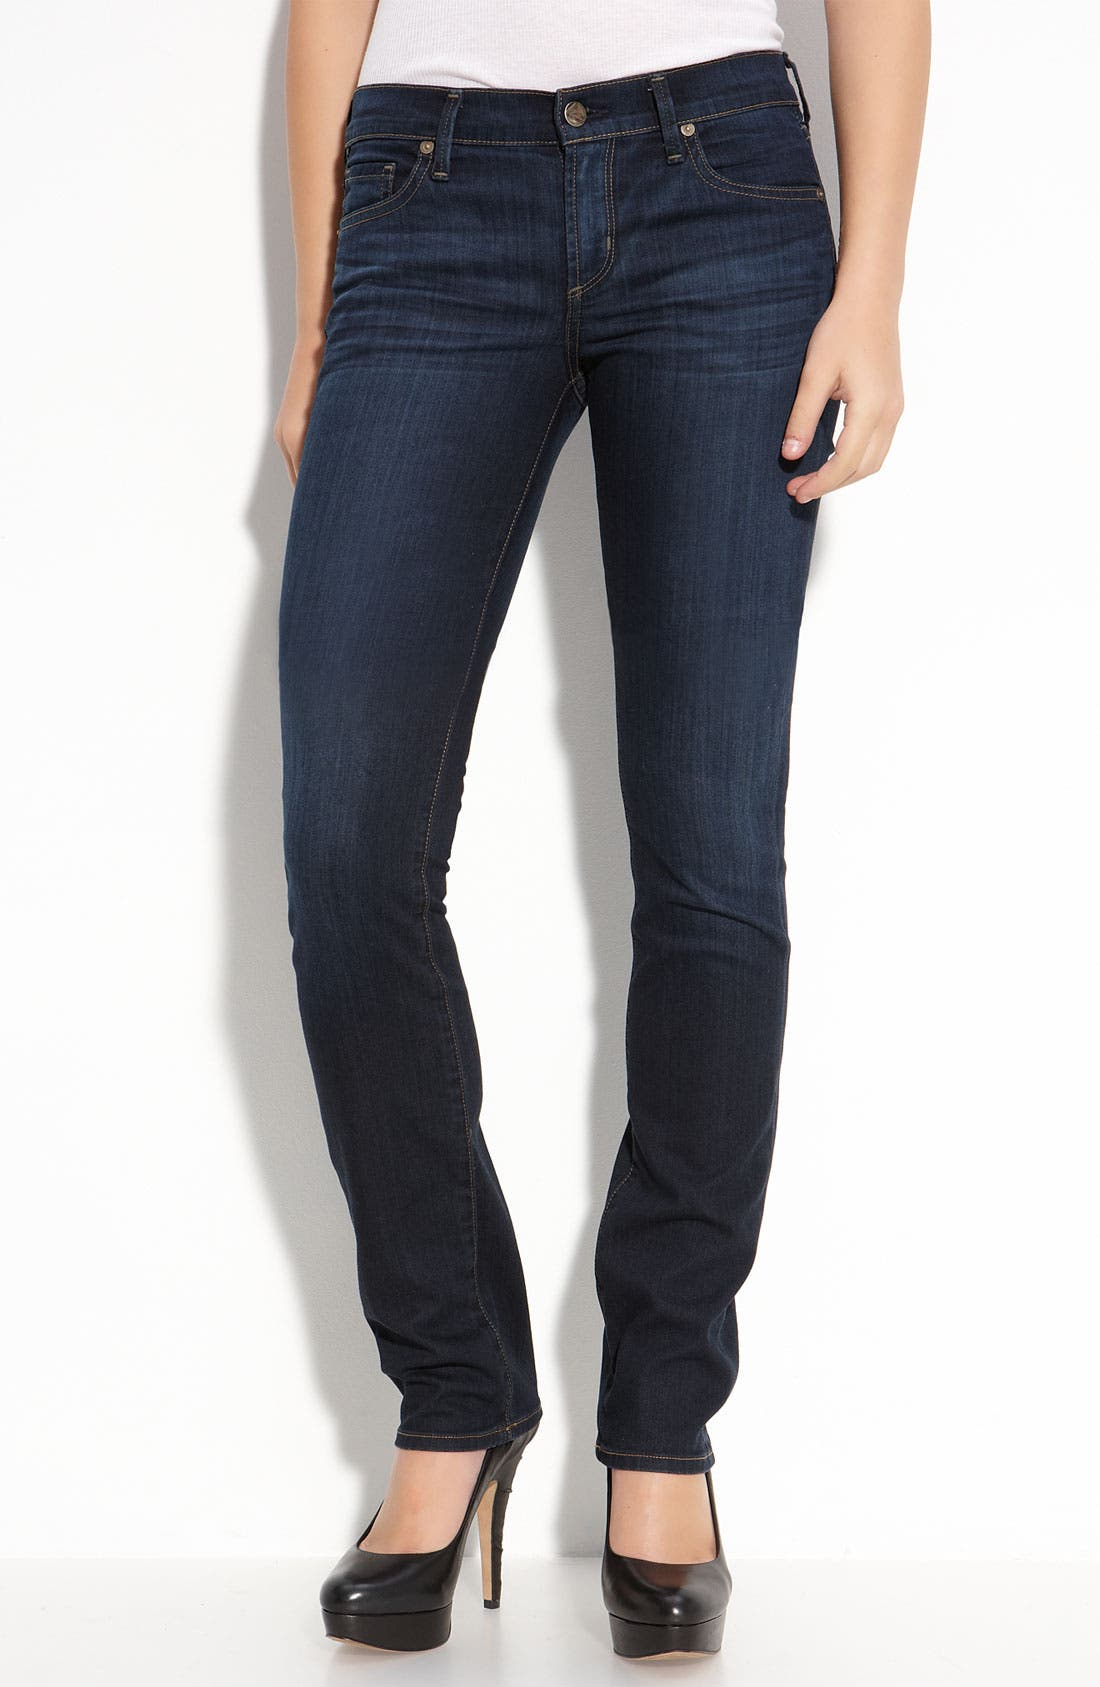 Main Image - Citizens of Humanity 'Ava' Straight Leg Stretch Jeans (Faith Dark Wash)